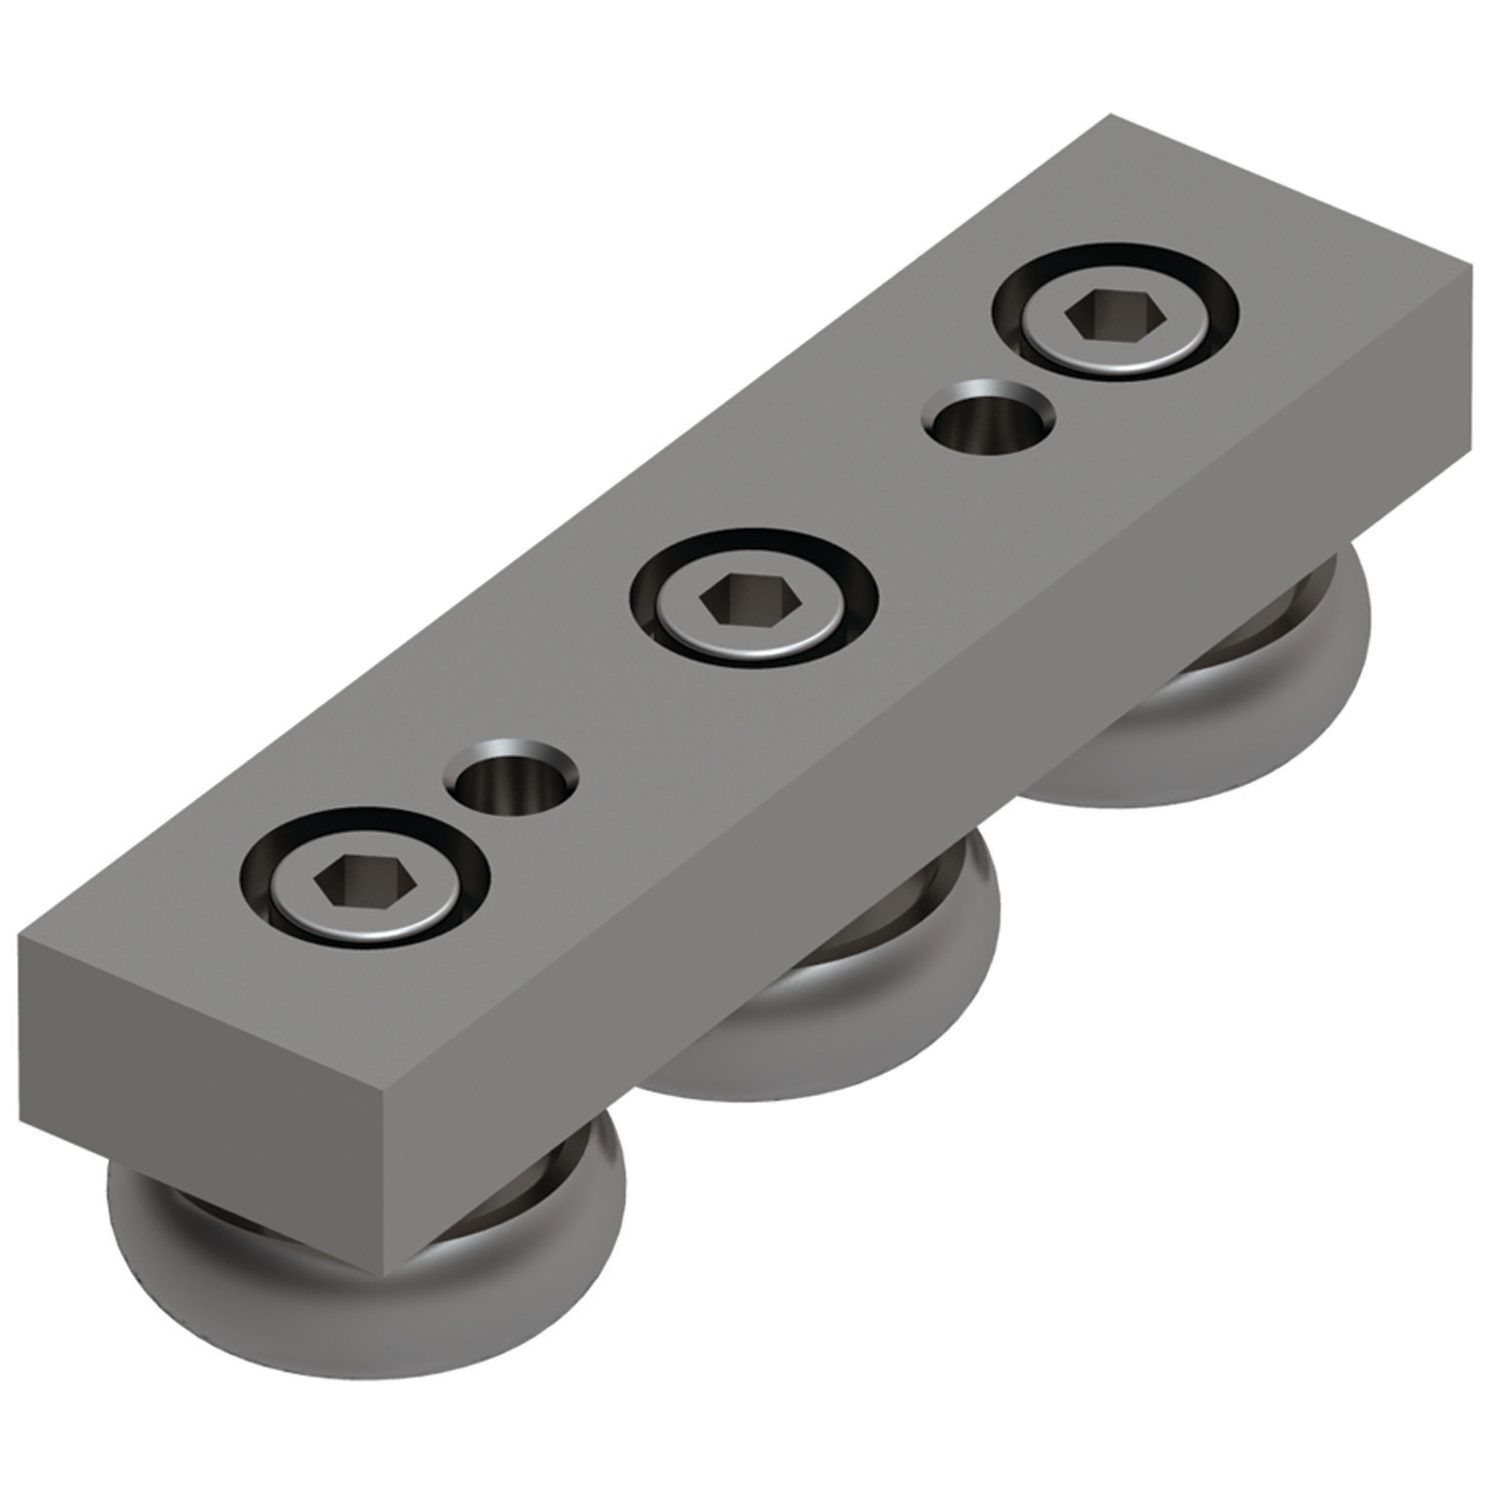 Product L1970.SB, Solid Body Steel Sliders for U rail (slave) /